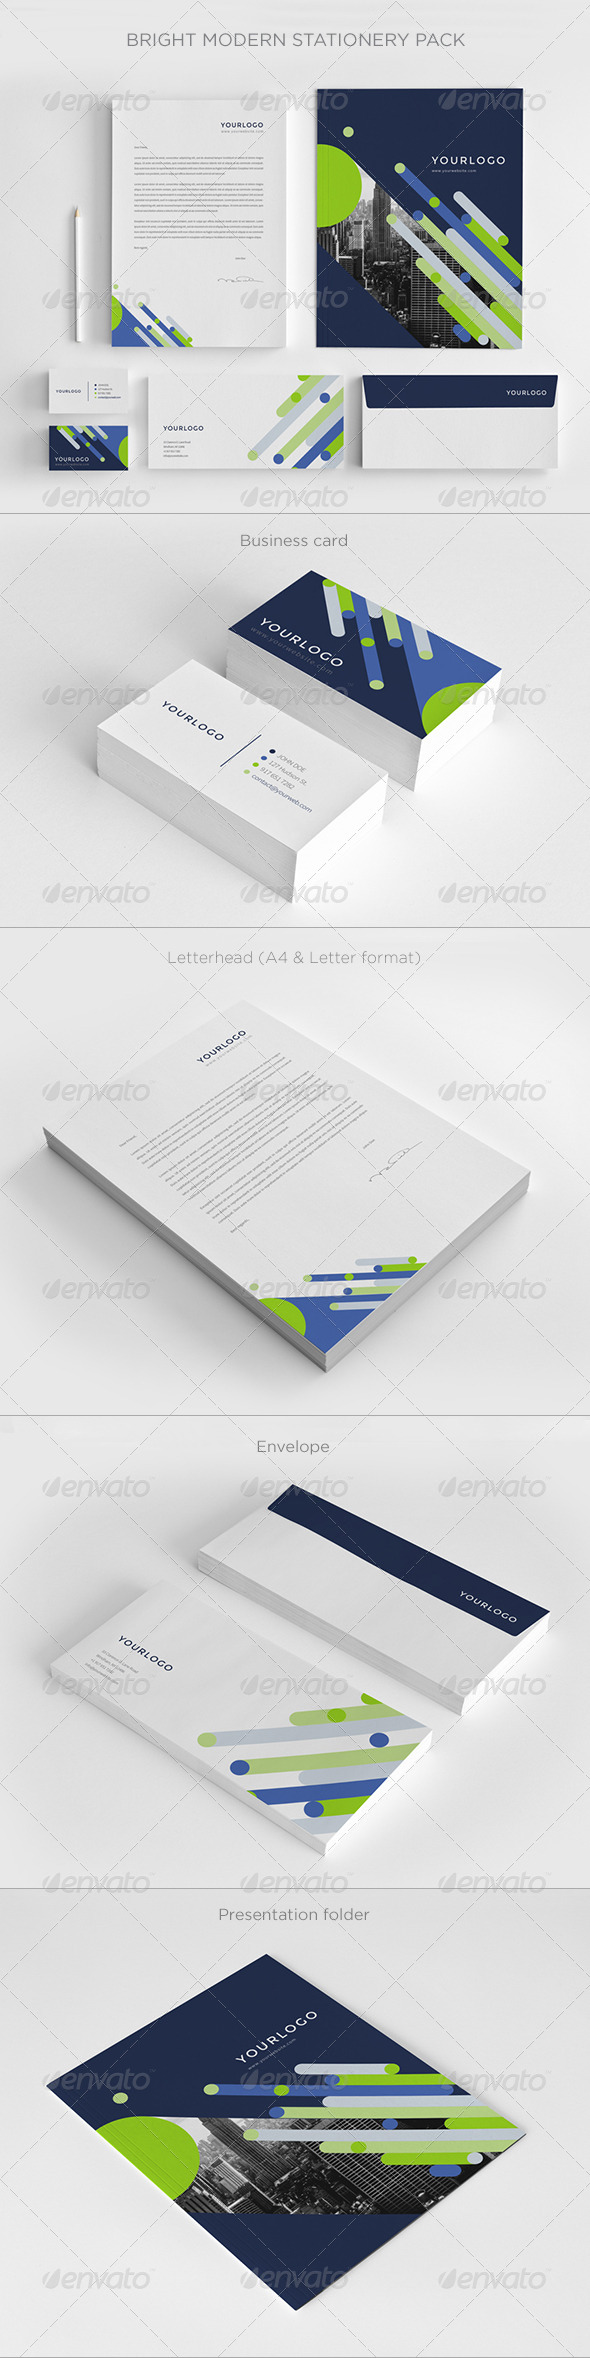 GraphicRiver Bright Modern Stationery Pack 7596124